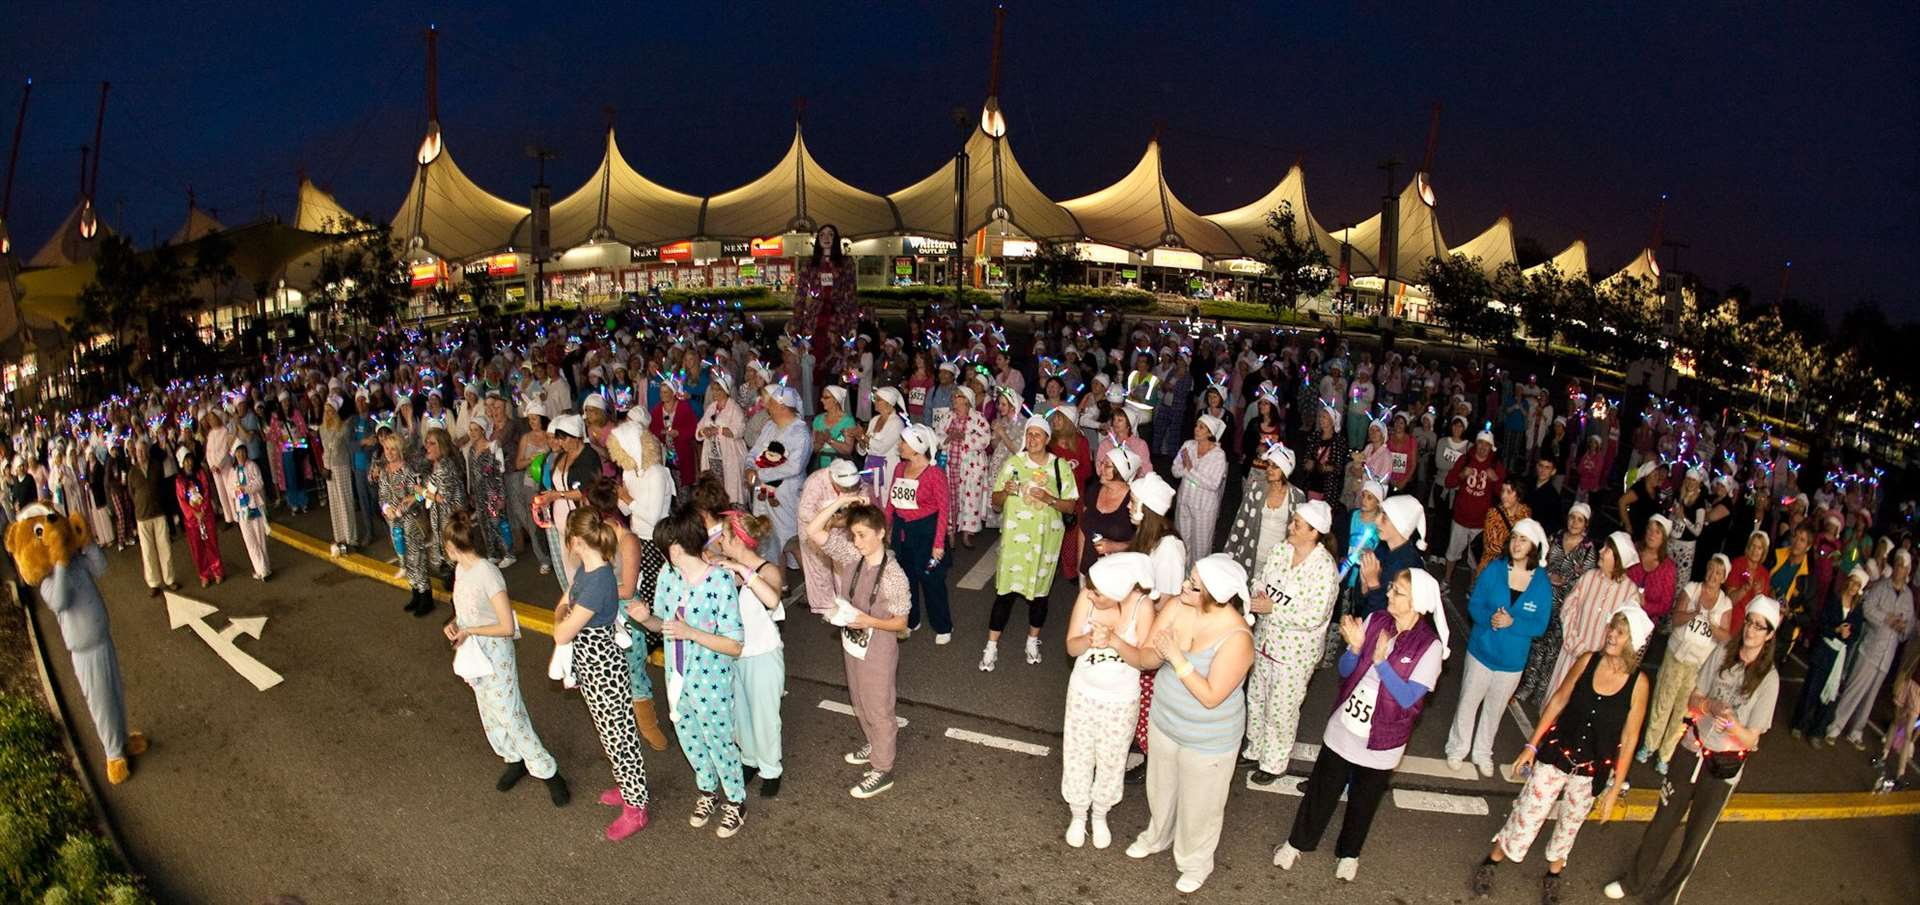 Pilgrims Hospice Pyjama Walk participants limber up for the event at the Ashford Designer Outlet in 2012